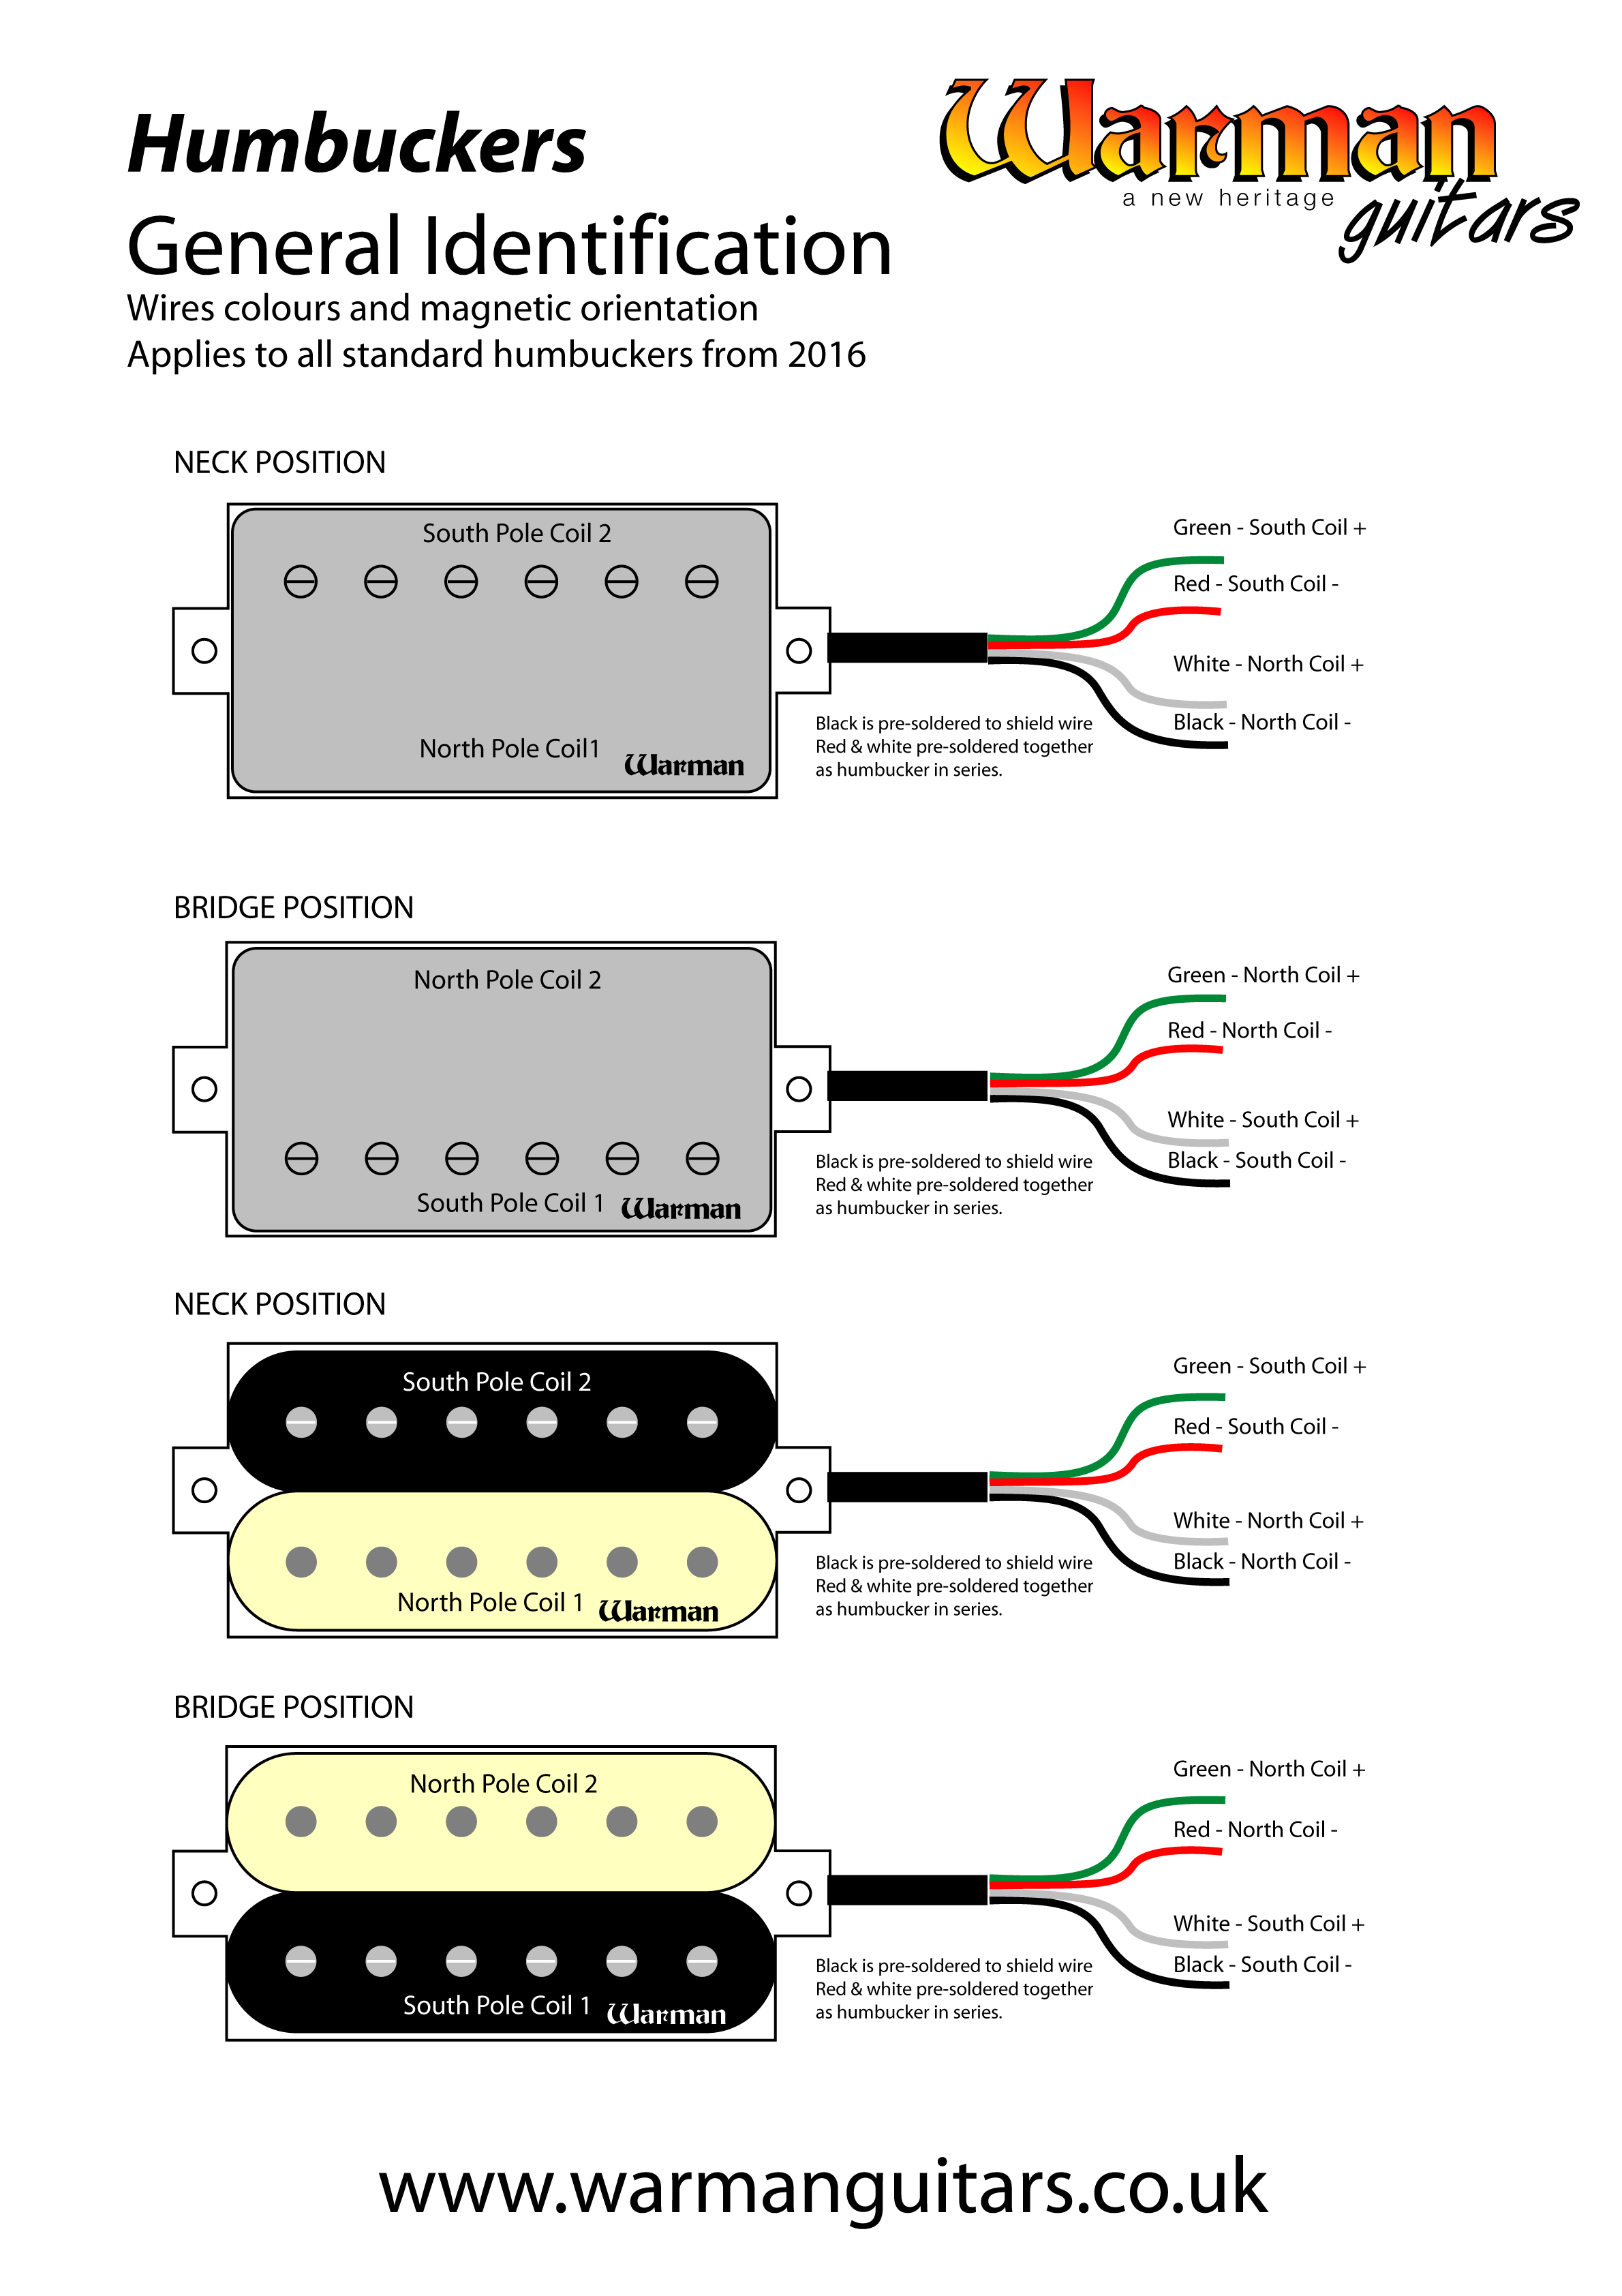 humbucker wire colours warman guitars. Black Bedroom Furniture Sets. Home Design Ideas